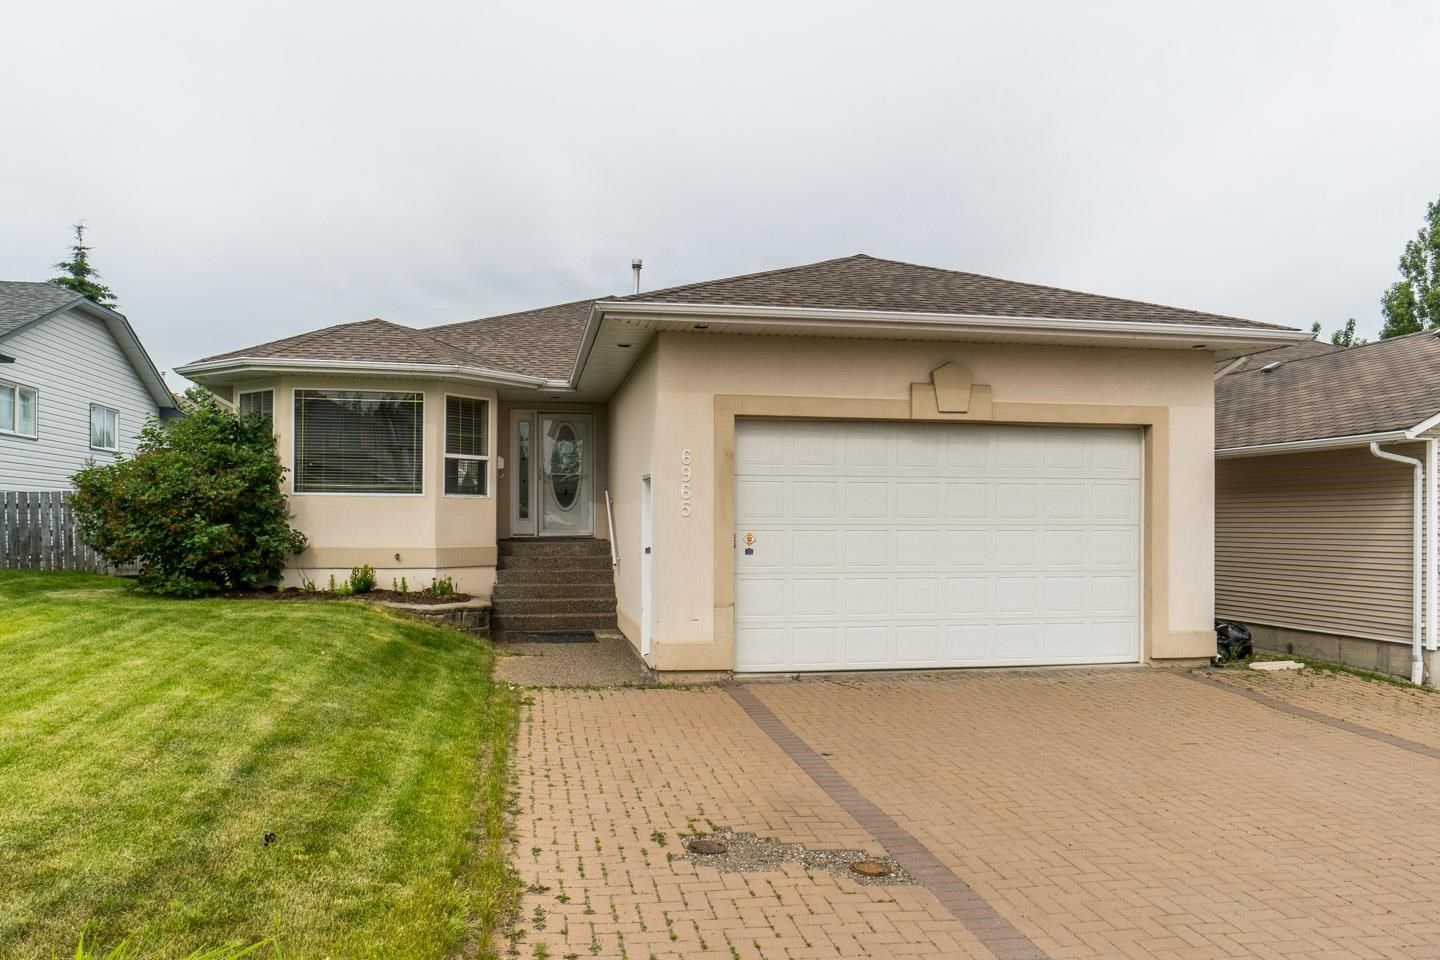 Main Photo: 6965 WESTGATE Avenue in Prince George: Lafreniere House for sale (PG City South (Zone 74))  : MLS®# R2596044